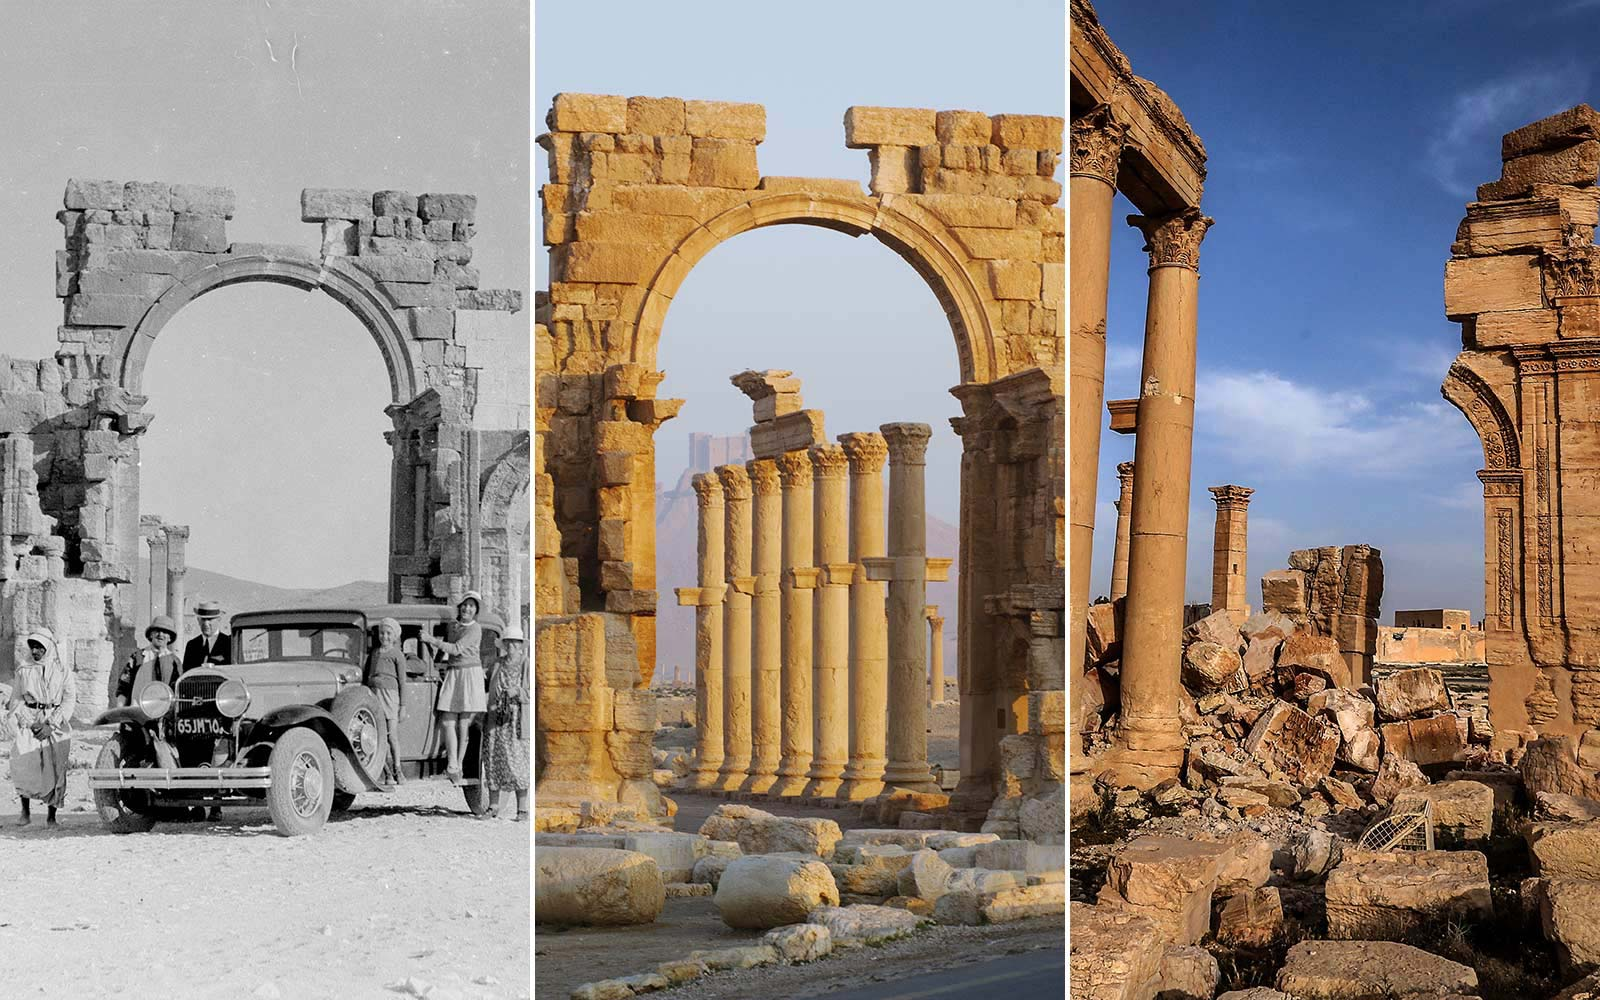 How a Beloved World Heritage Site Became a Battlefield. And What's Next.